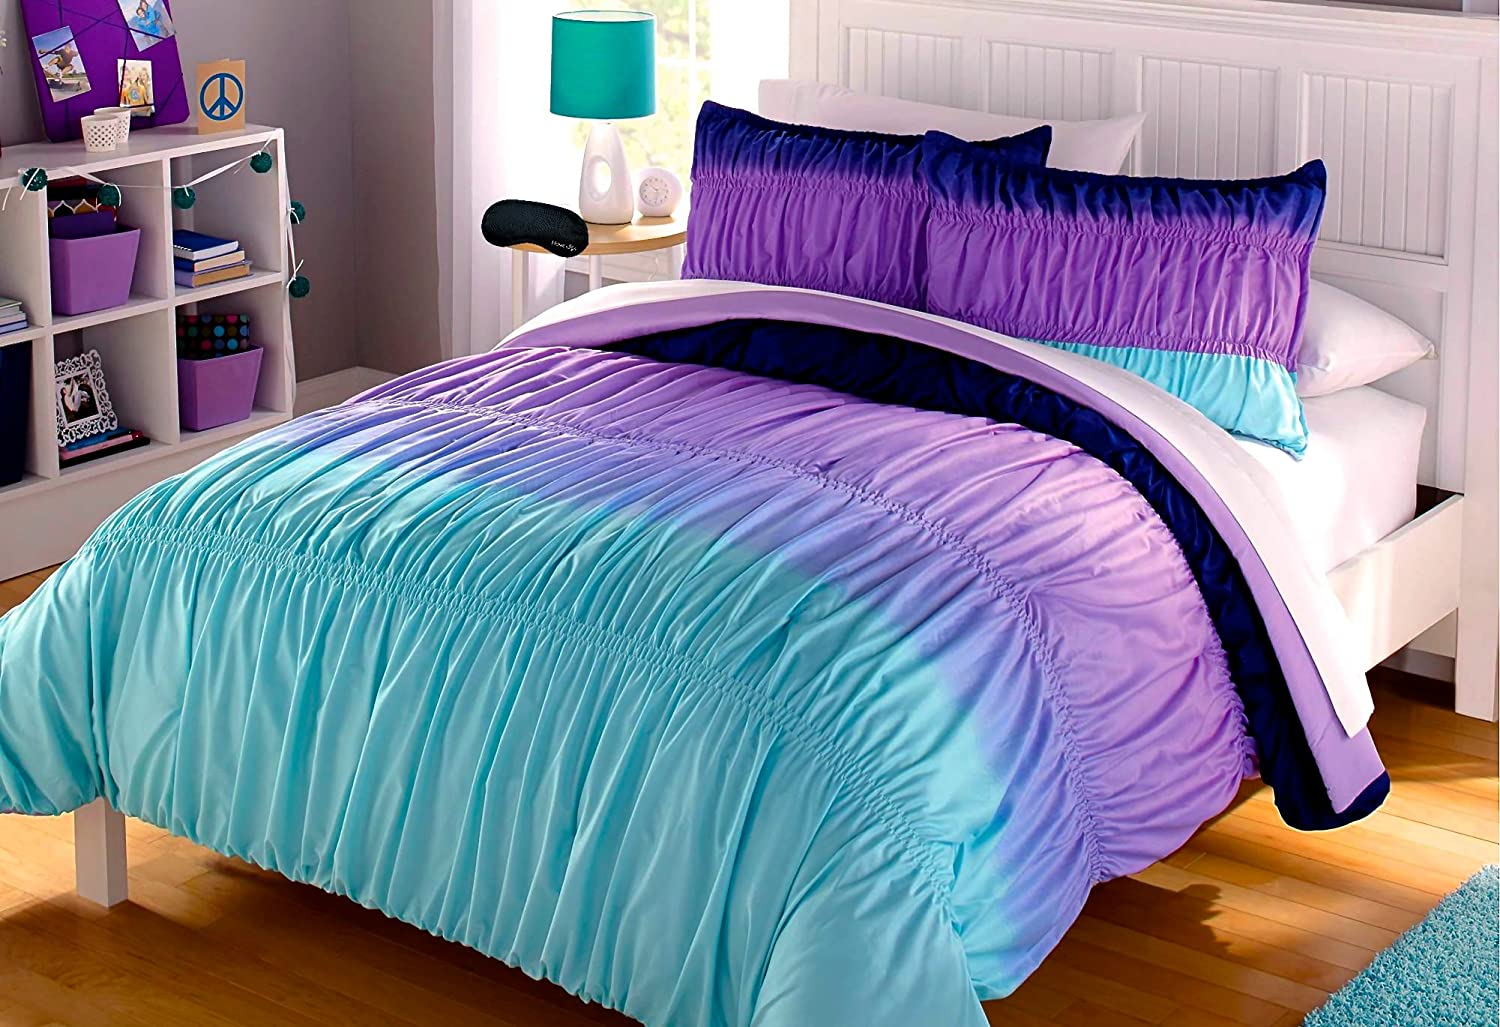 Zebra Bedroom Set